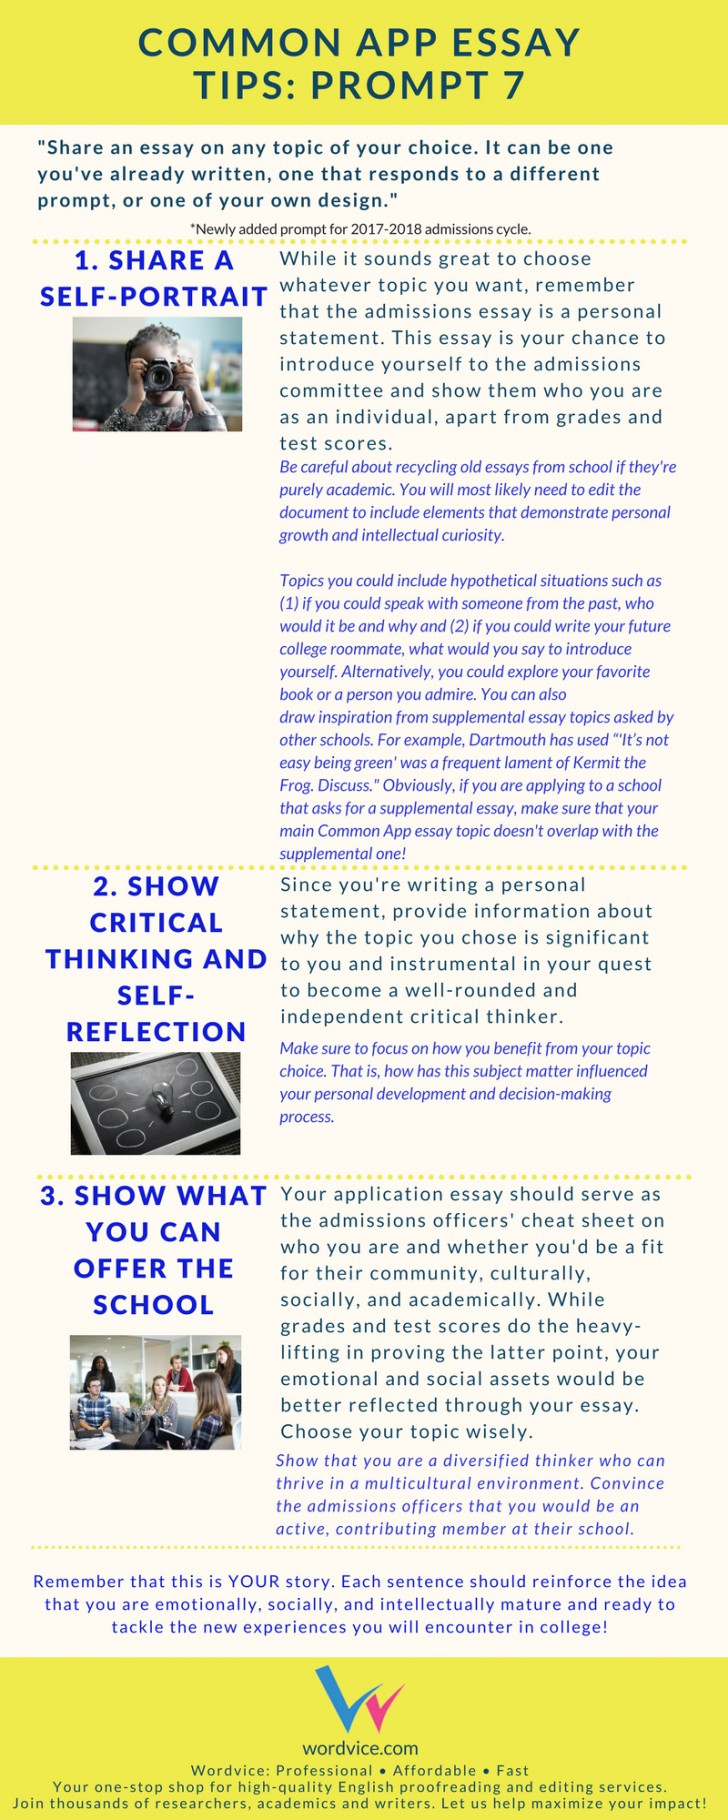 010 Common Application Essay Prompts Example App Brainstormprompt Best 2017 2017-18 A Guide Examples 728